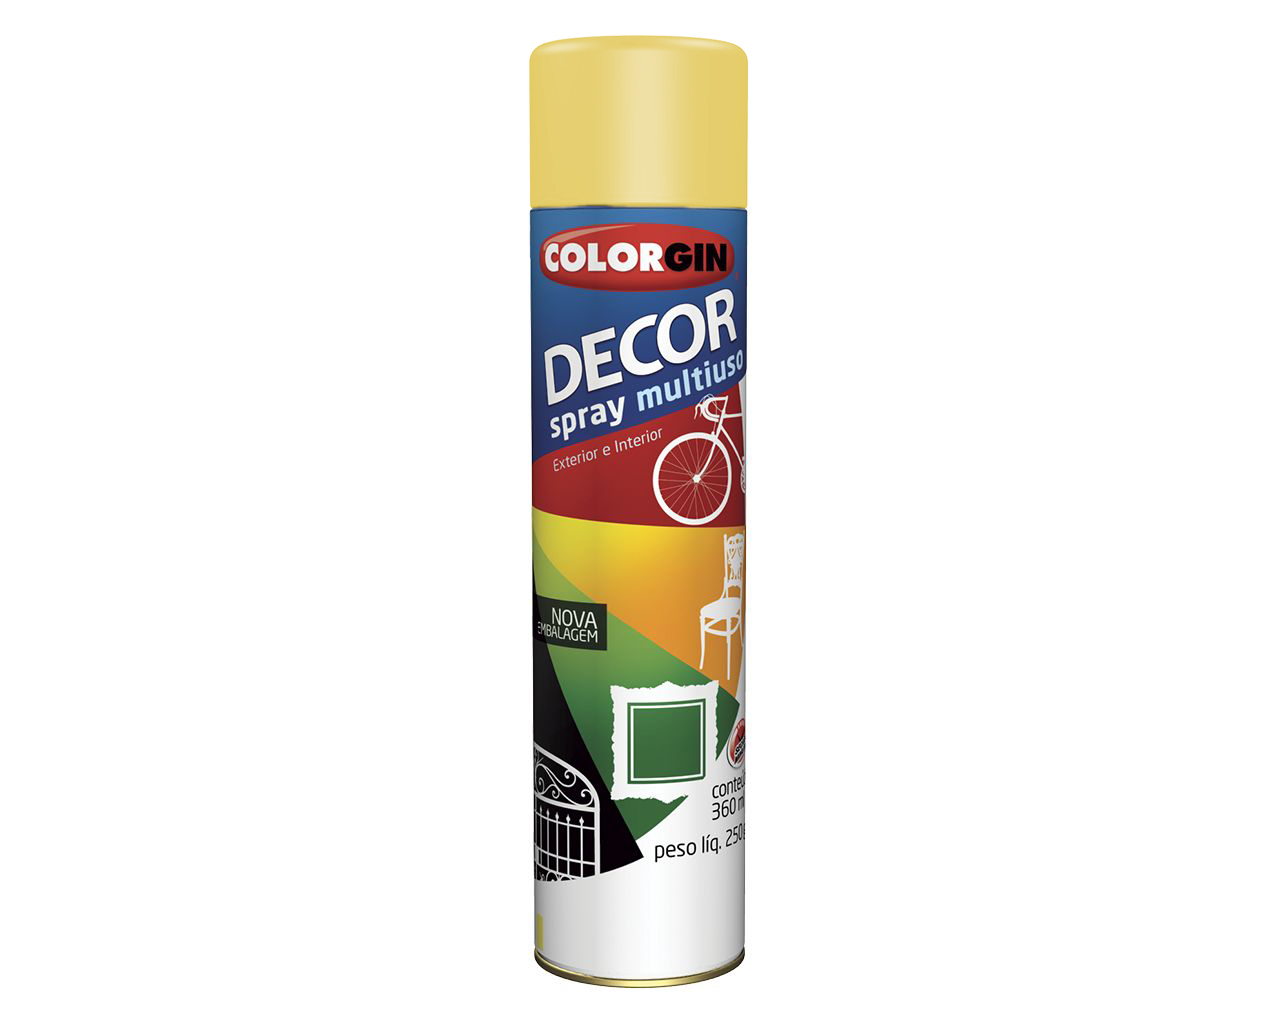 TINTA SPRAY DECOR AMARELO